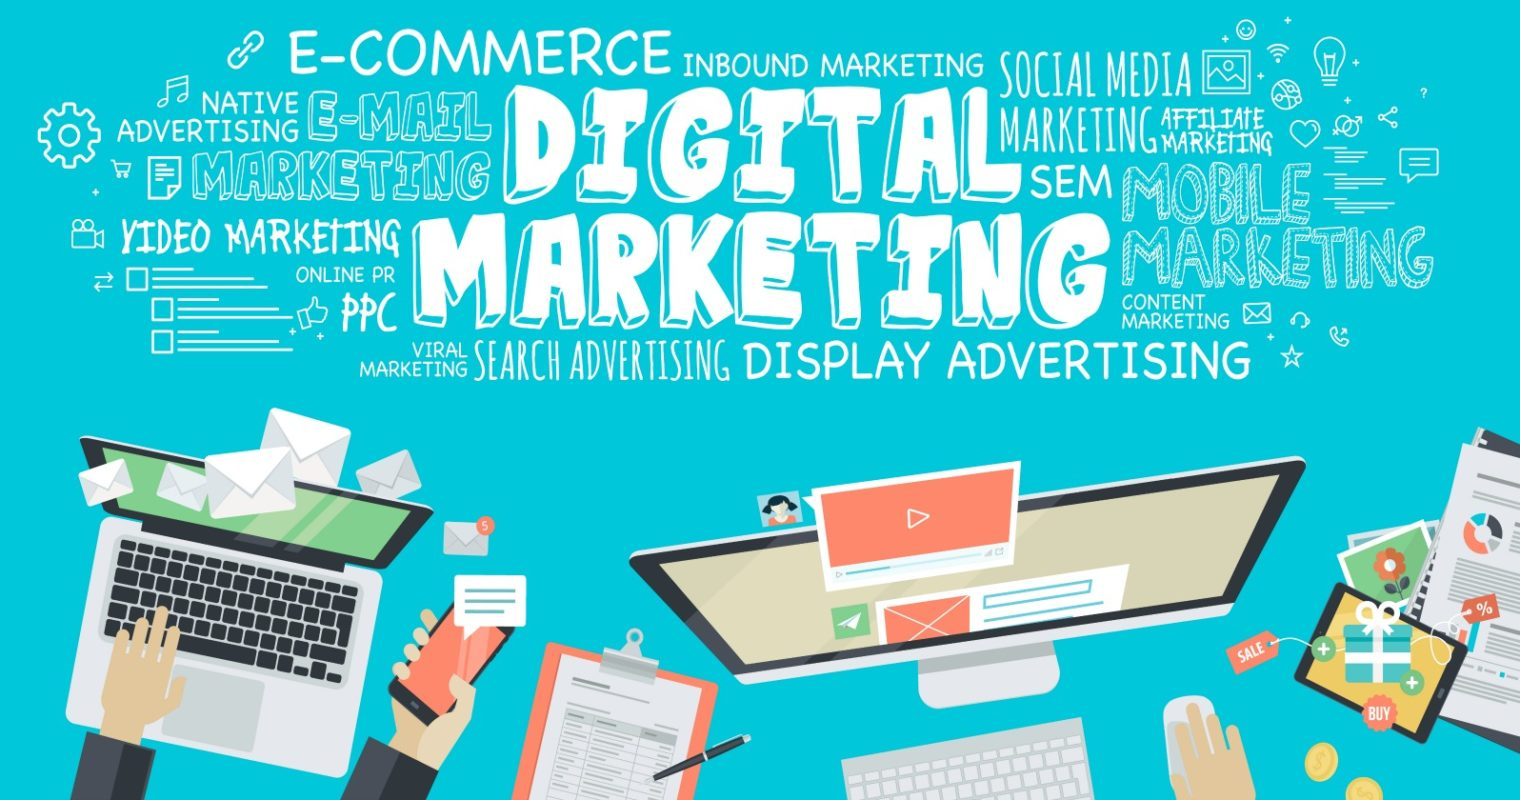 52% Say Majority of Their Business Marketing Activity Is Digital [DATA]